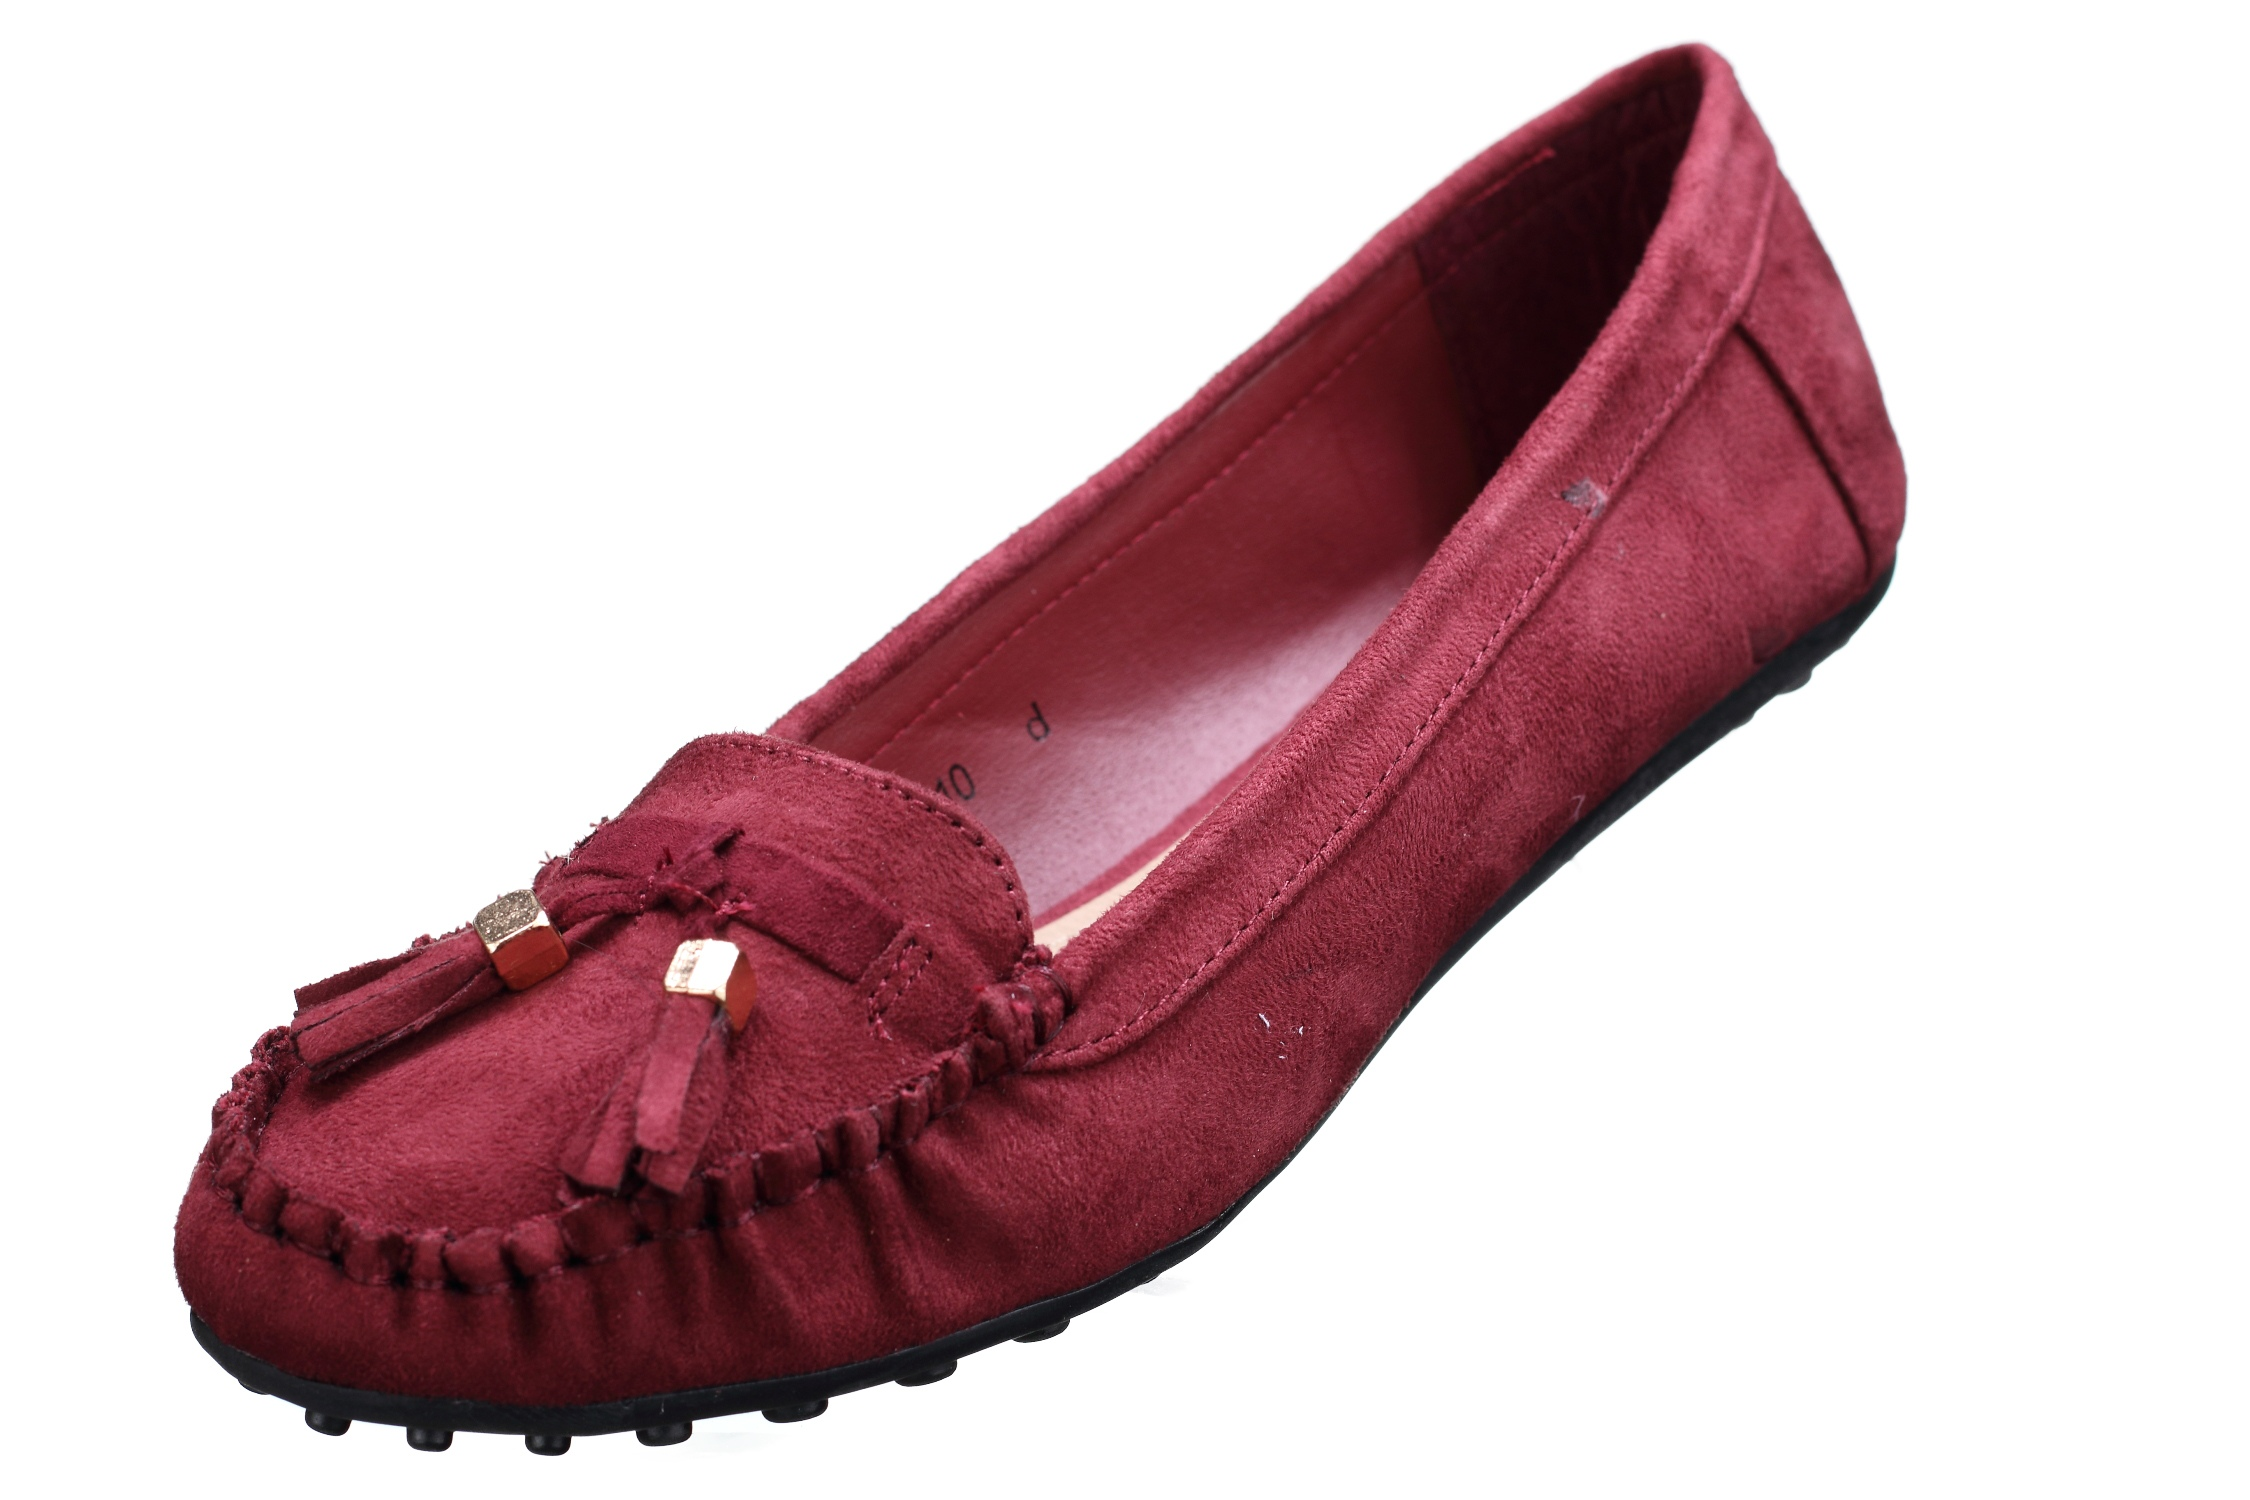 http://www.leadermode.com/125744/lily-shoes-m10-wine.jpg